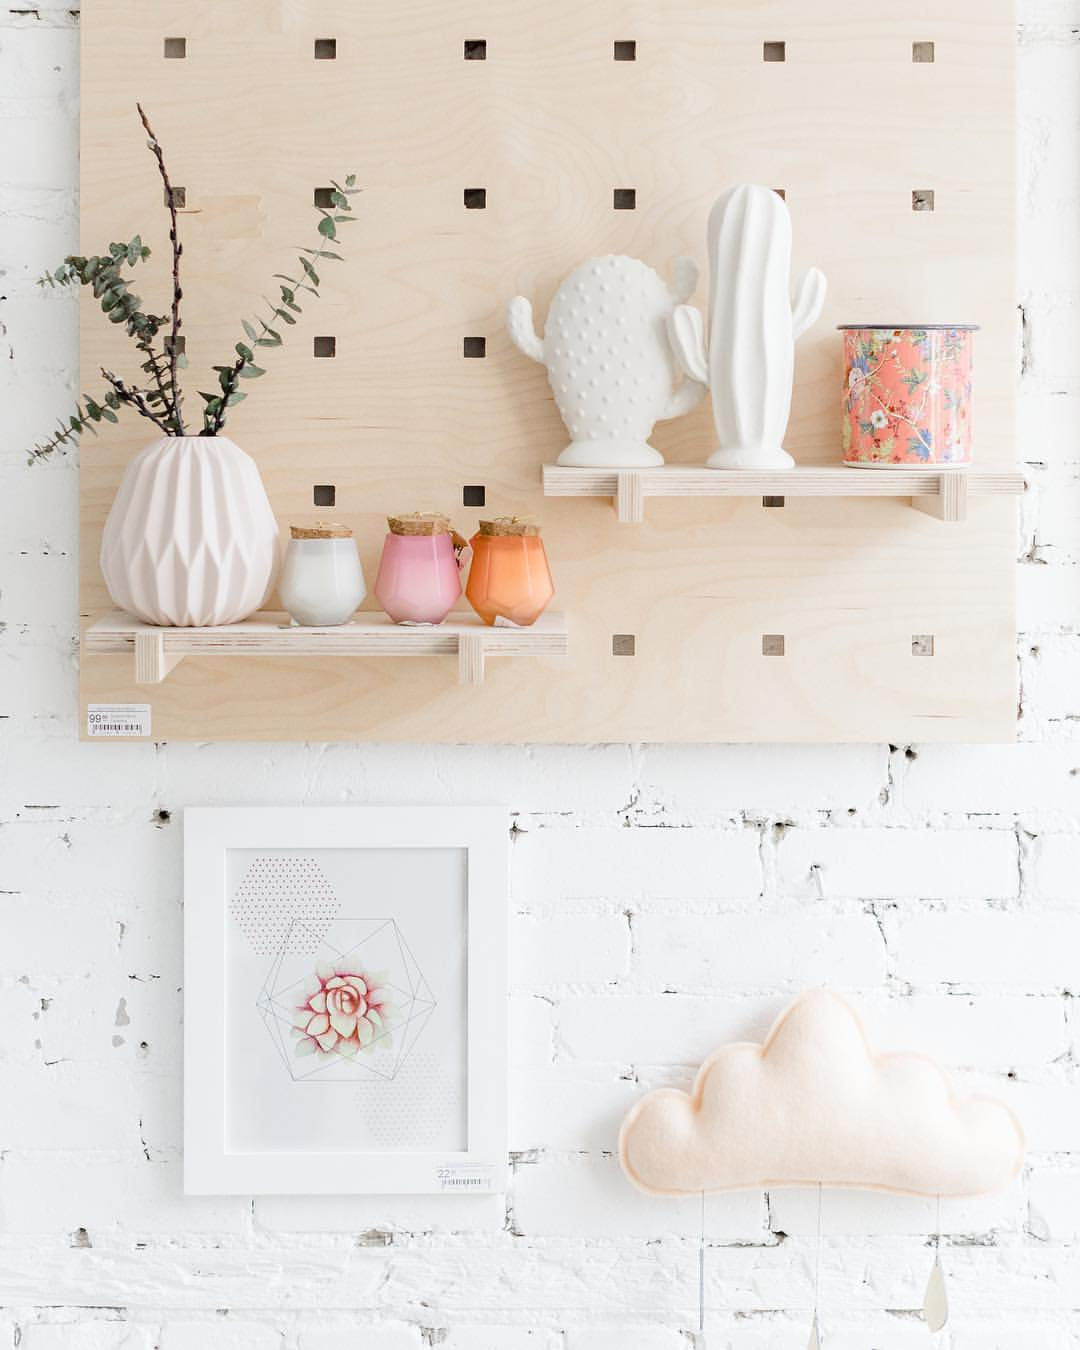 Powder, Wall Decor, THE BUTTER FLYING-VONMEL Luxe Gifts